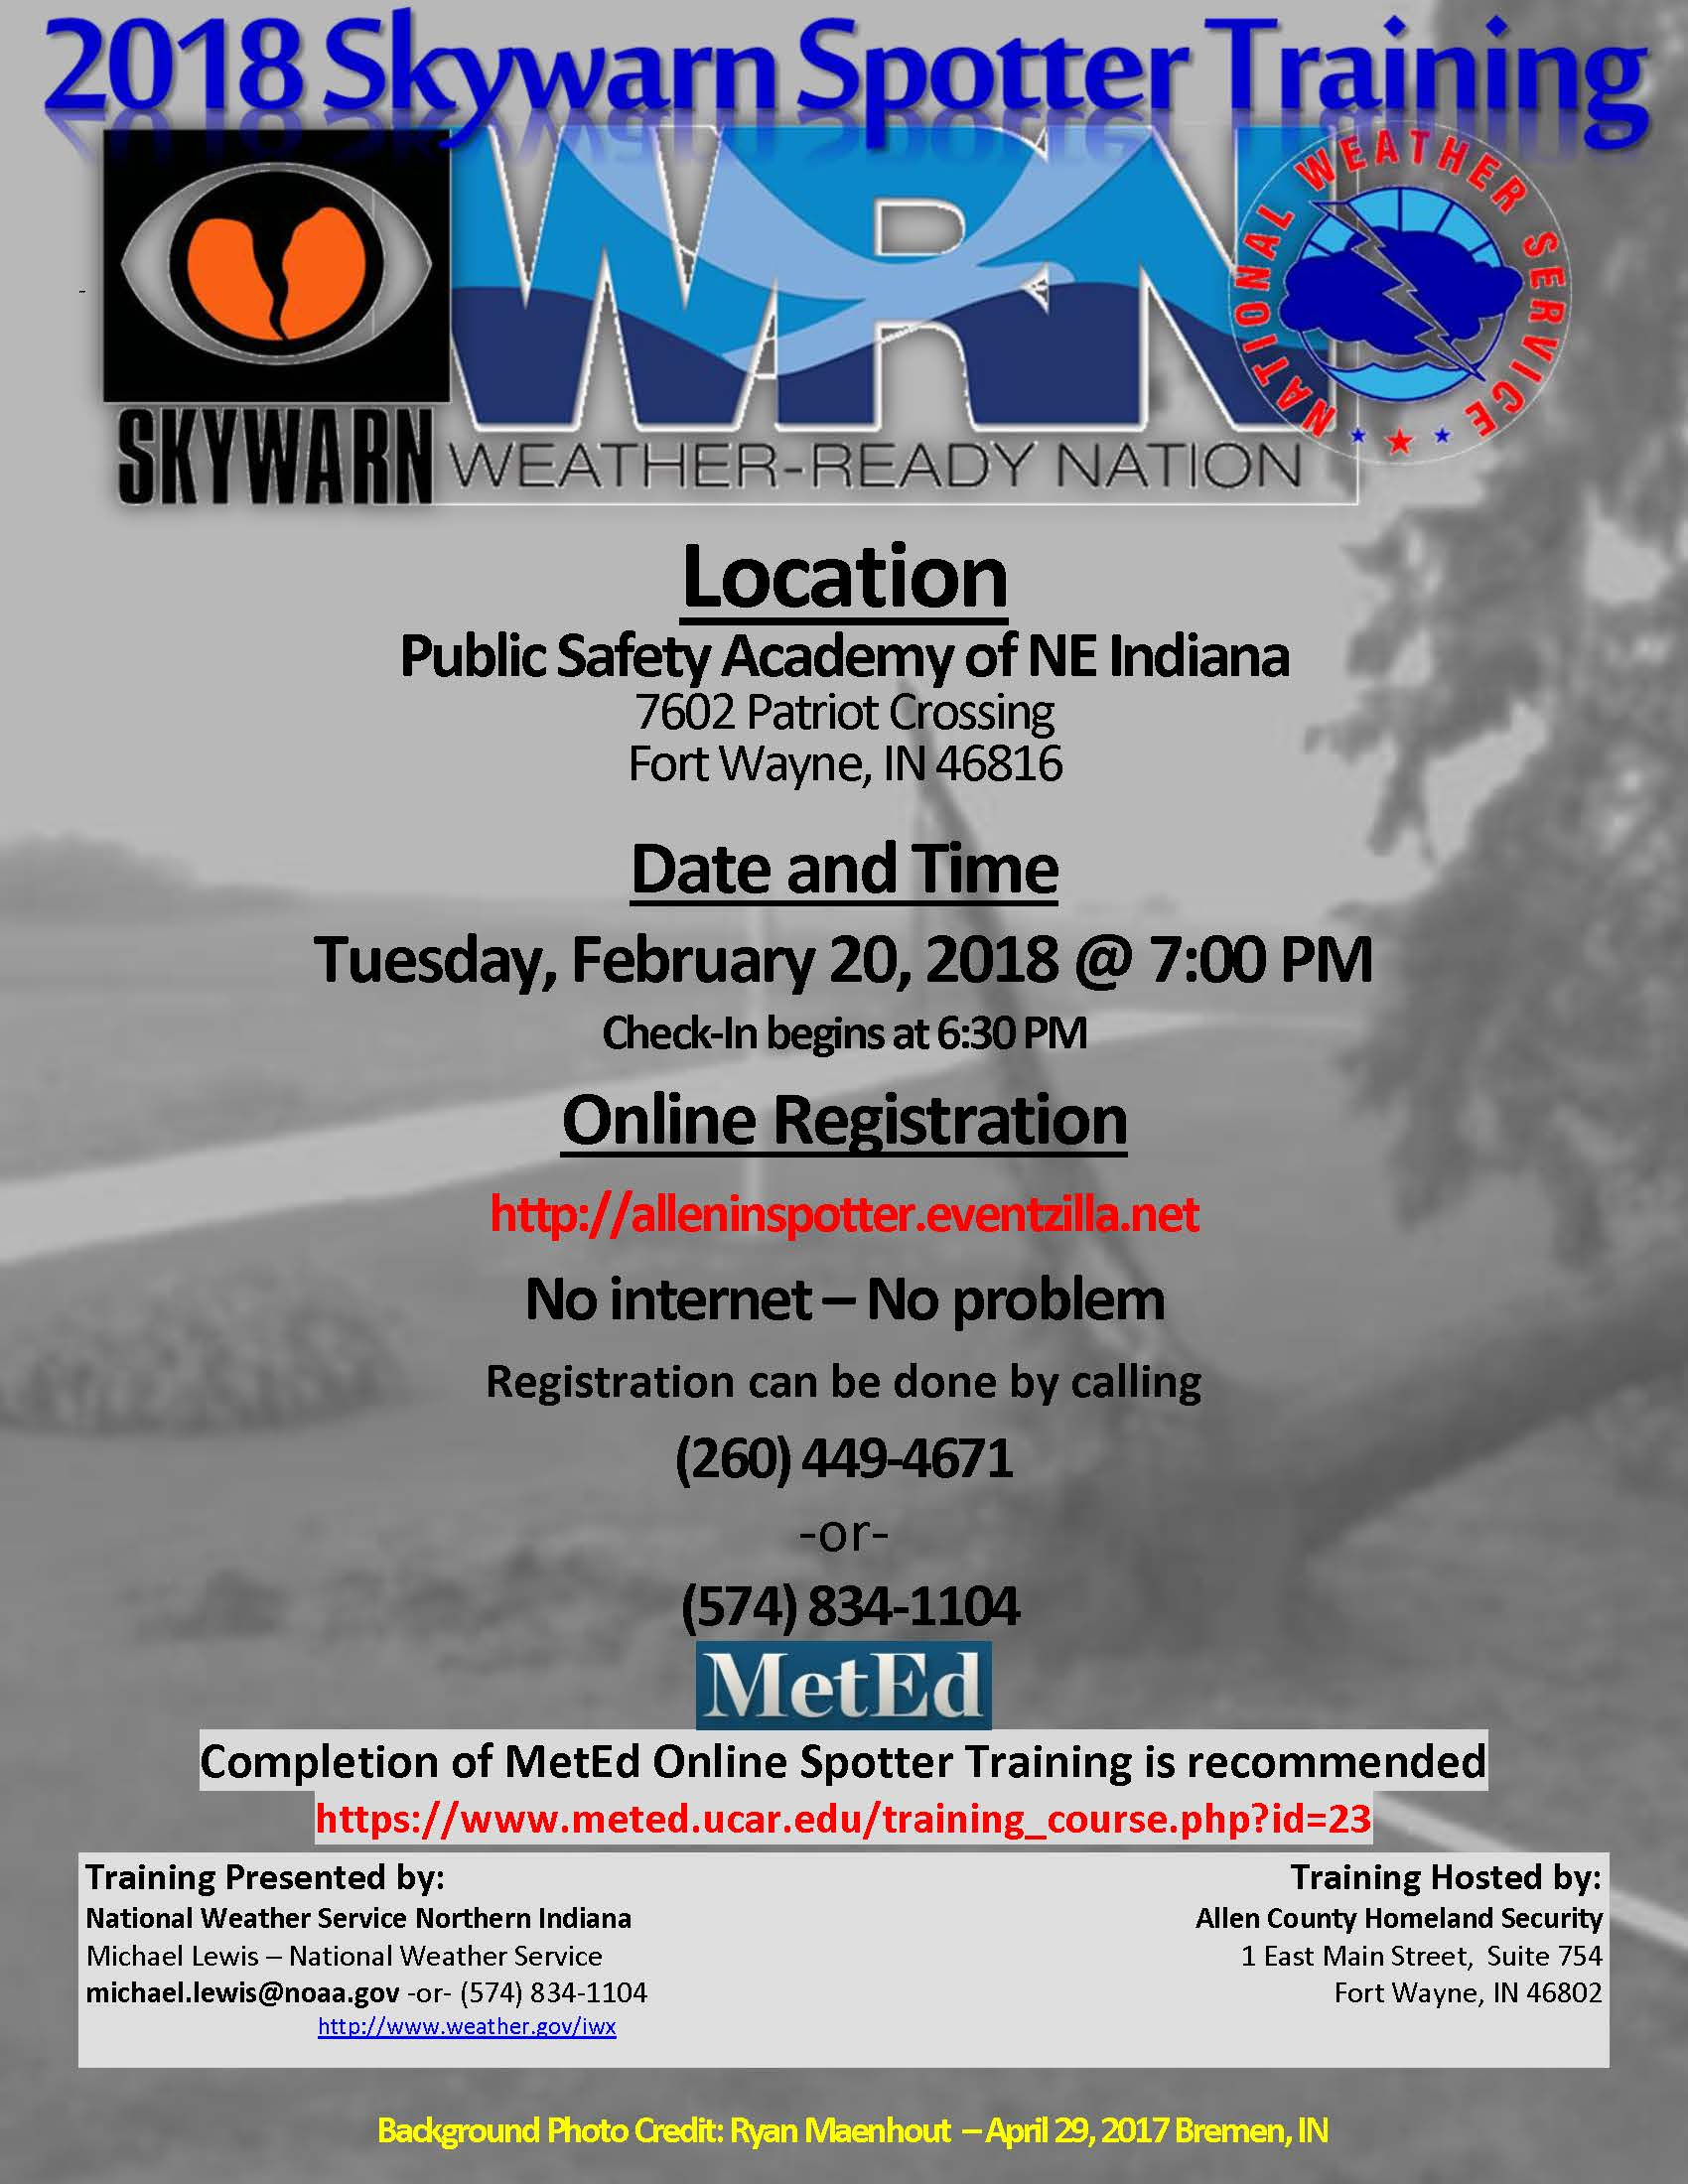 2018 skywarn spotter training allen county indiana flyer.pdf